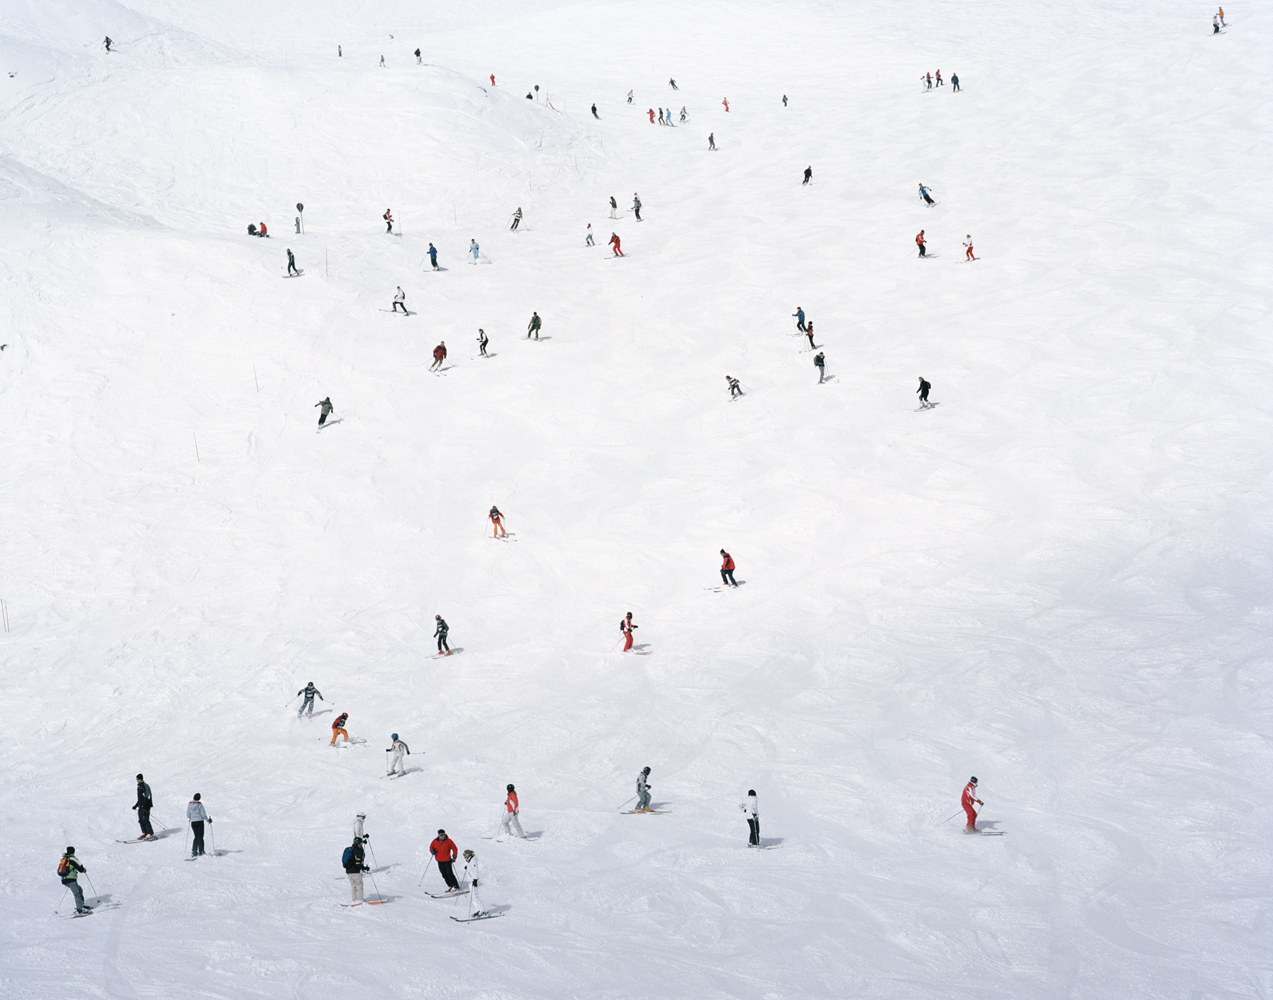 Crowded Slopes I, 2008